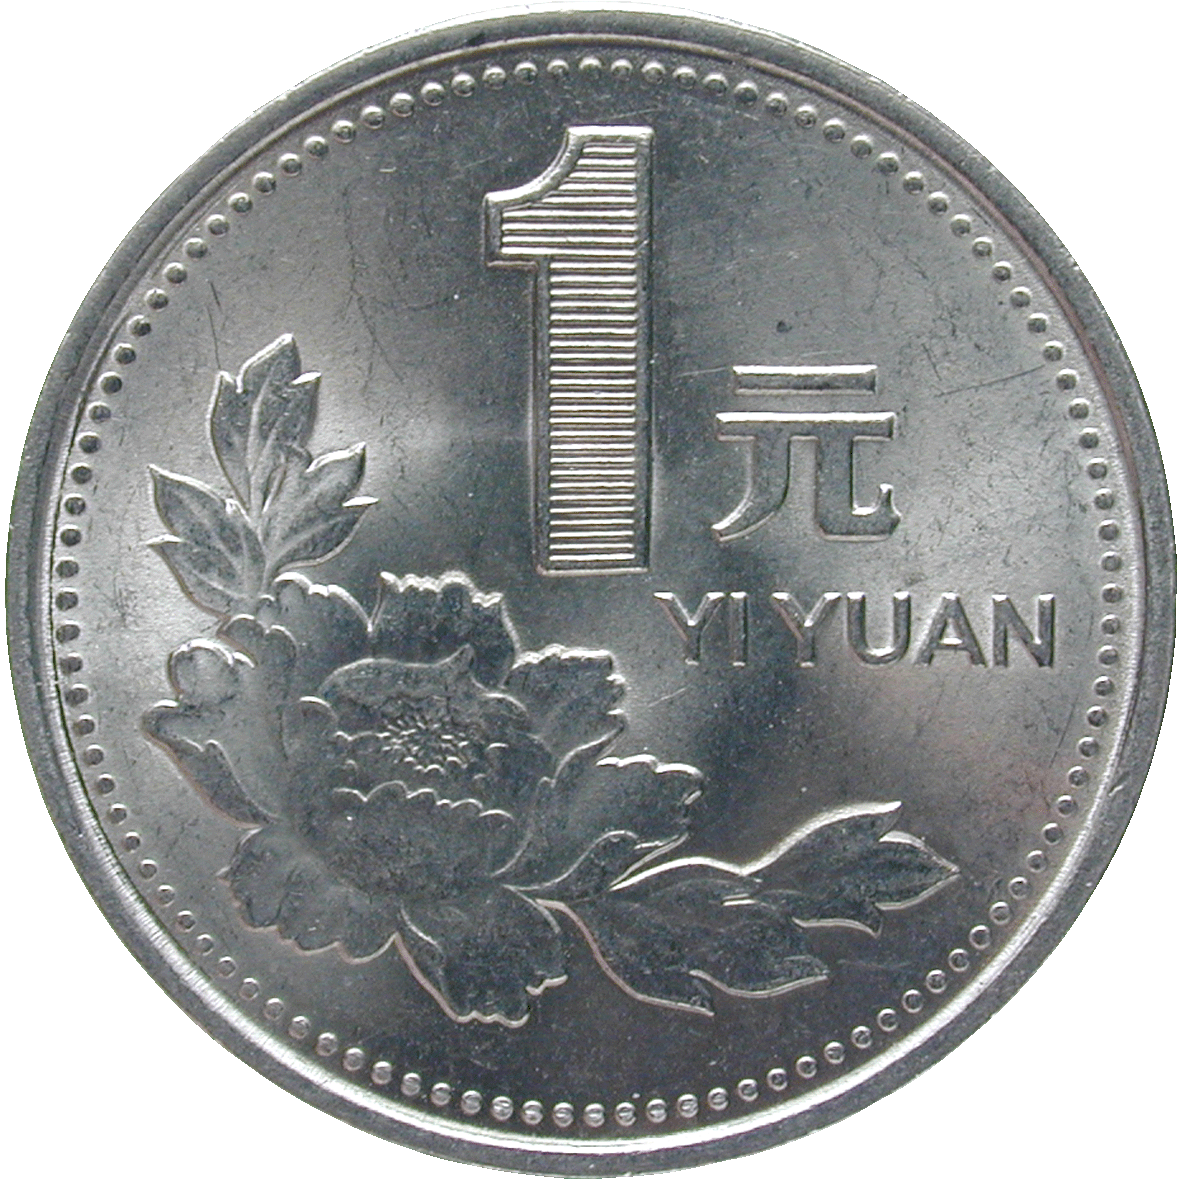 Volksrepublik China, 1 Yuan 1995 (reverse)